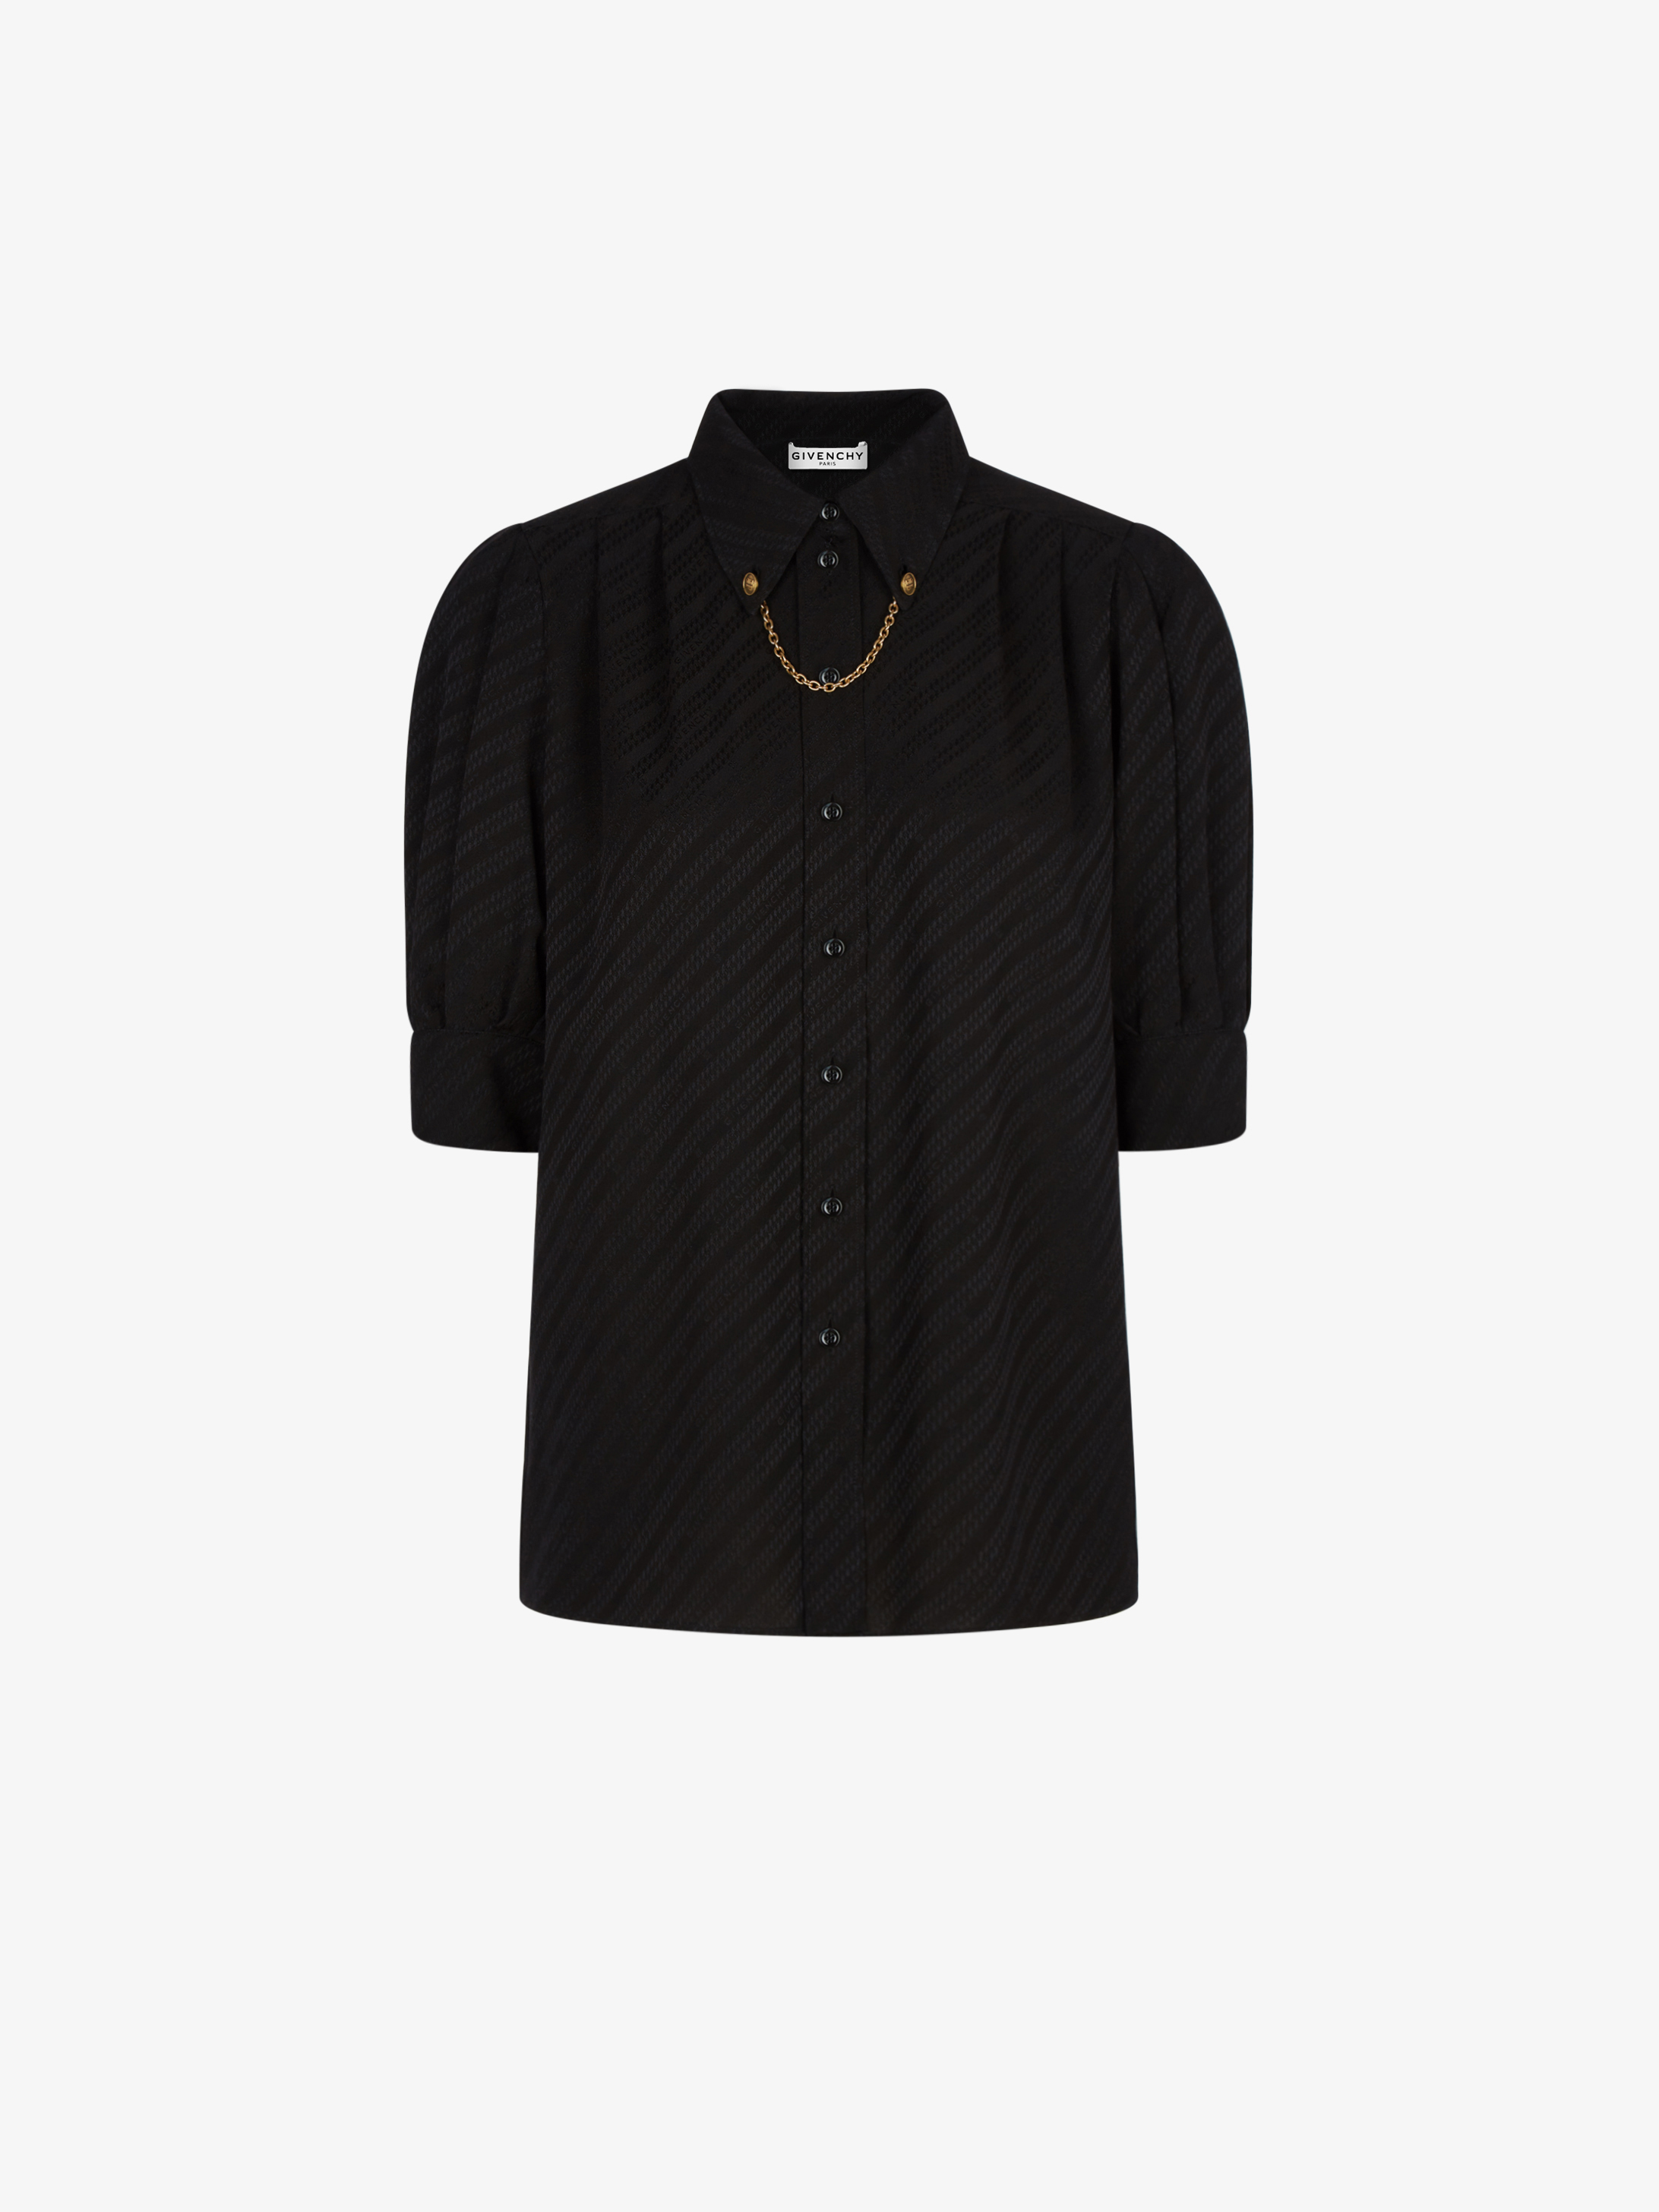 GIVENCHY chain shirt in silk with chain collar